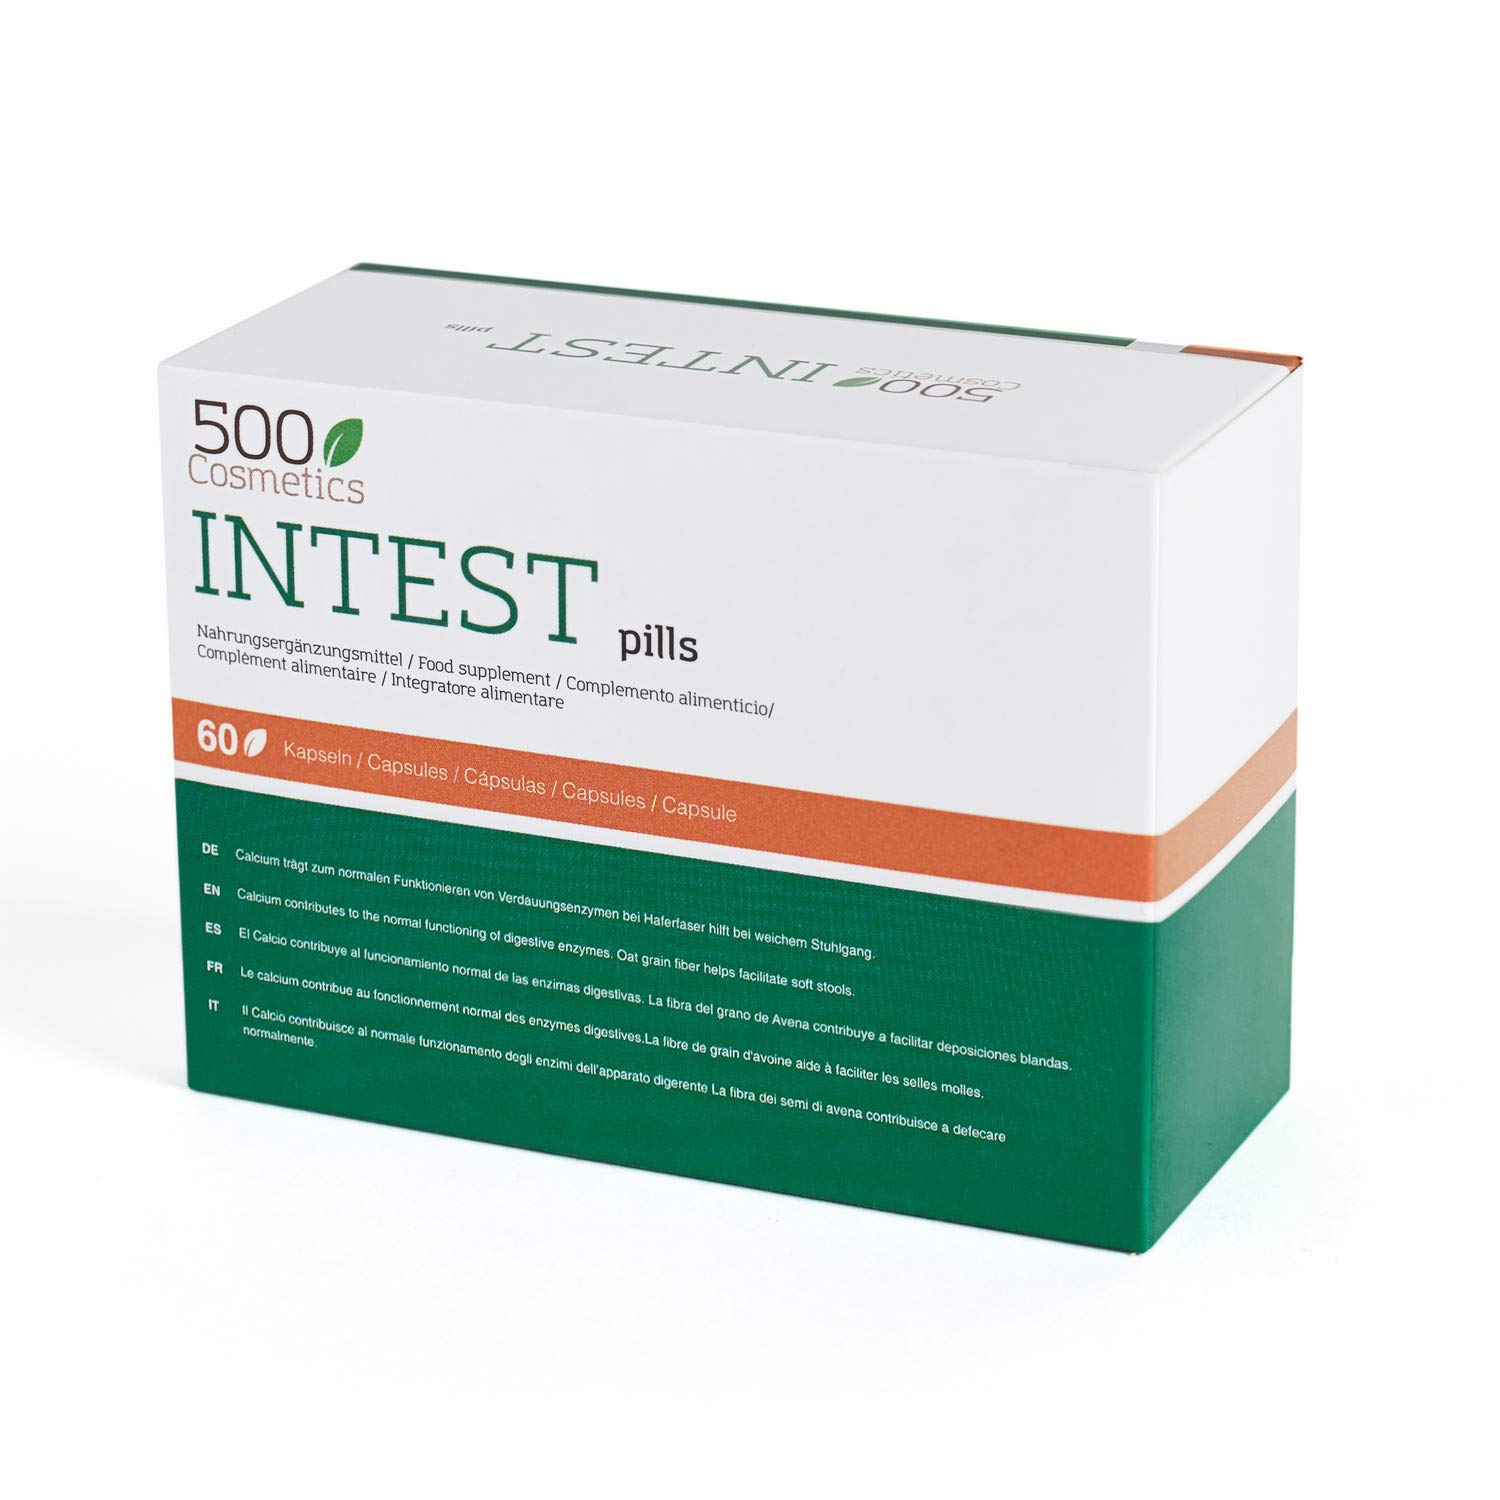 Amazon.com: 500Cosmetics Intest - Natural Capsules to Prevent ...